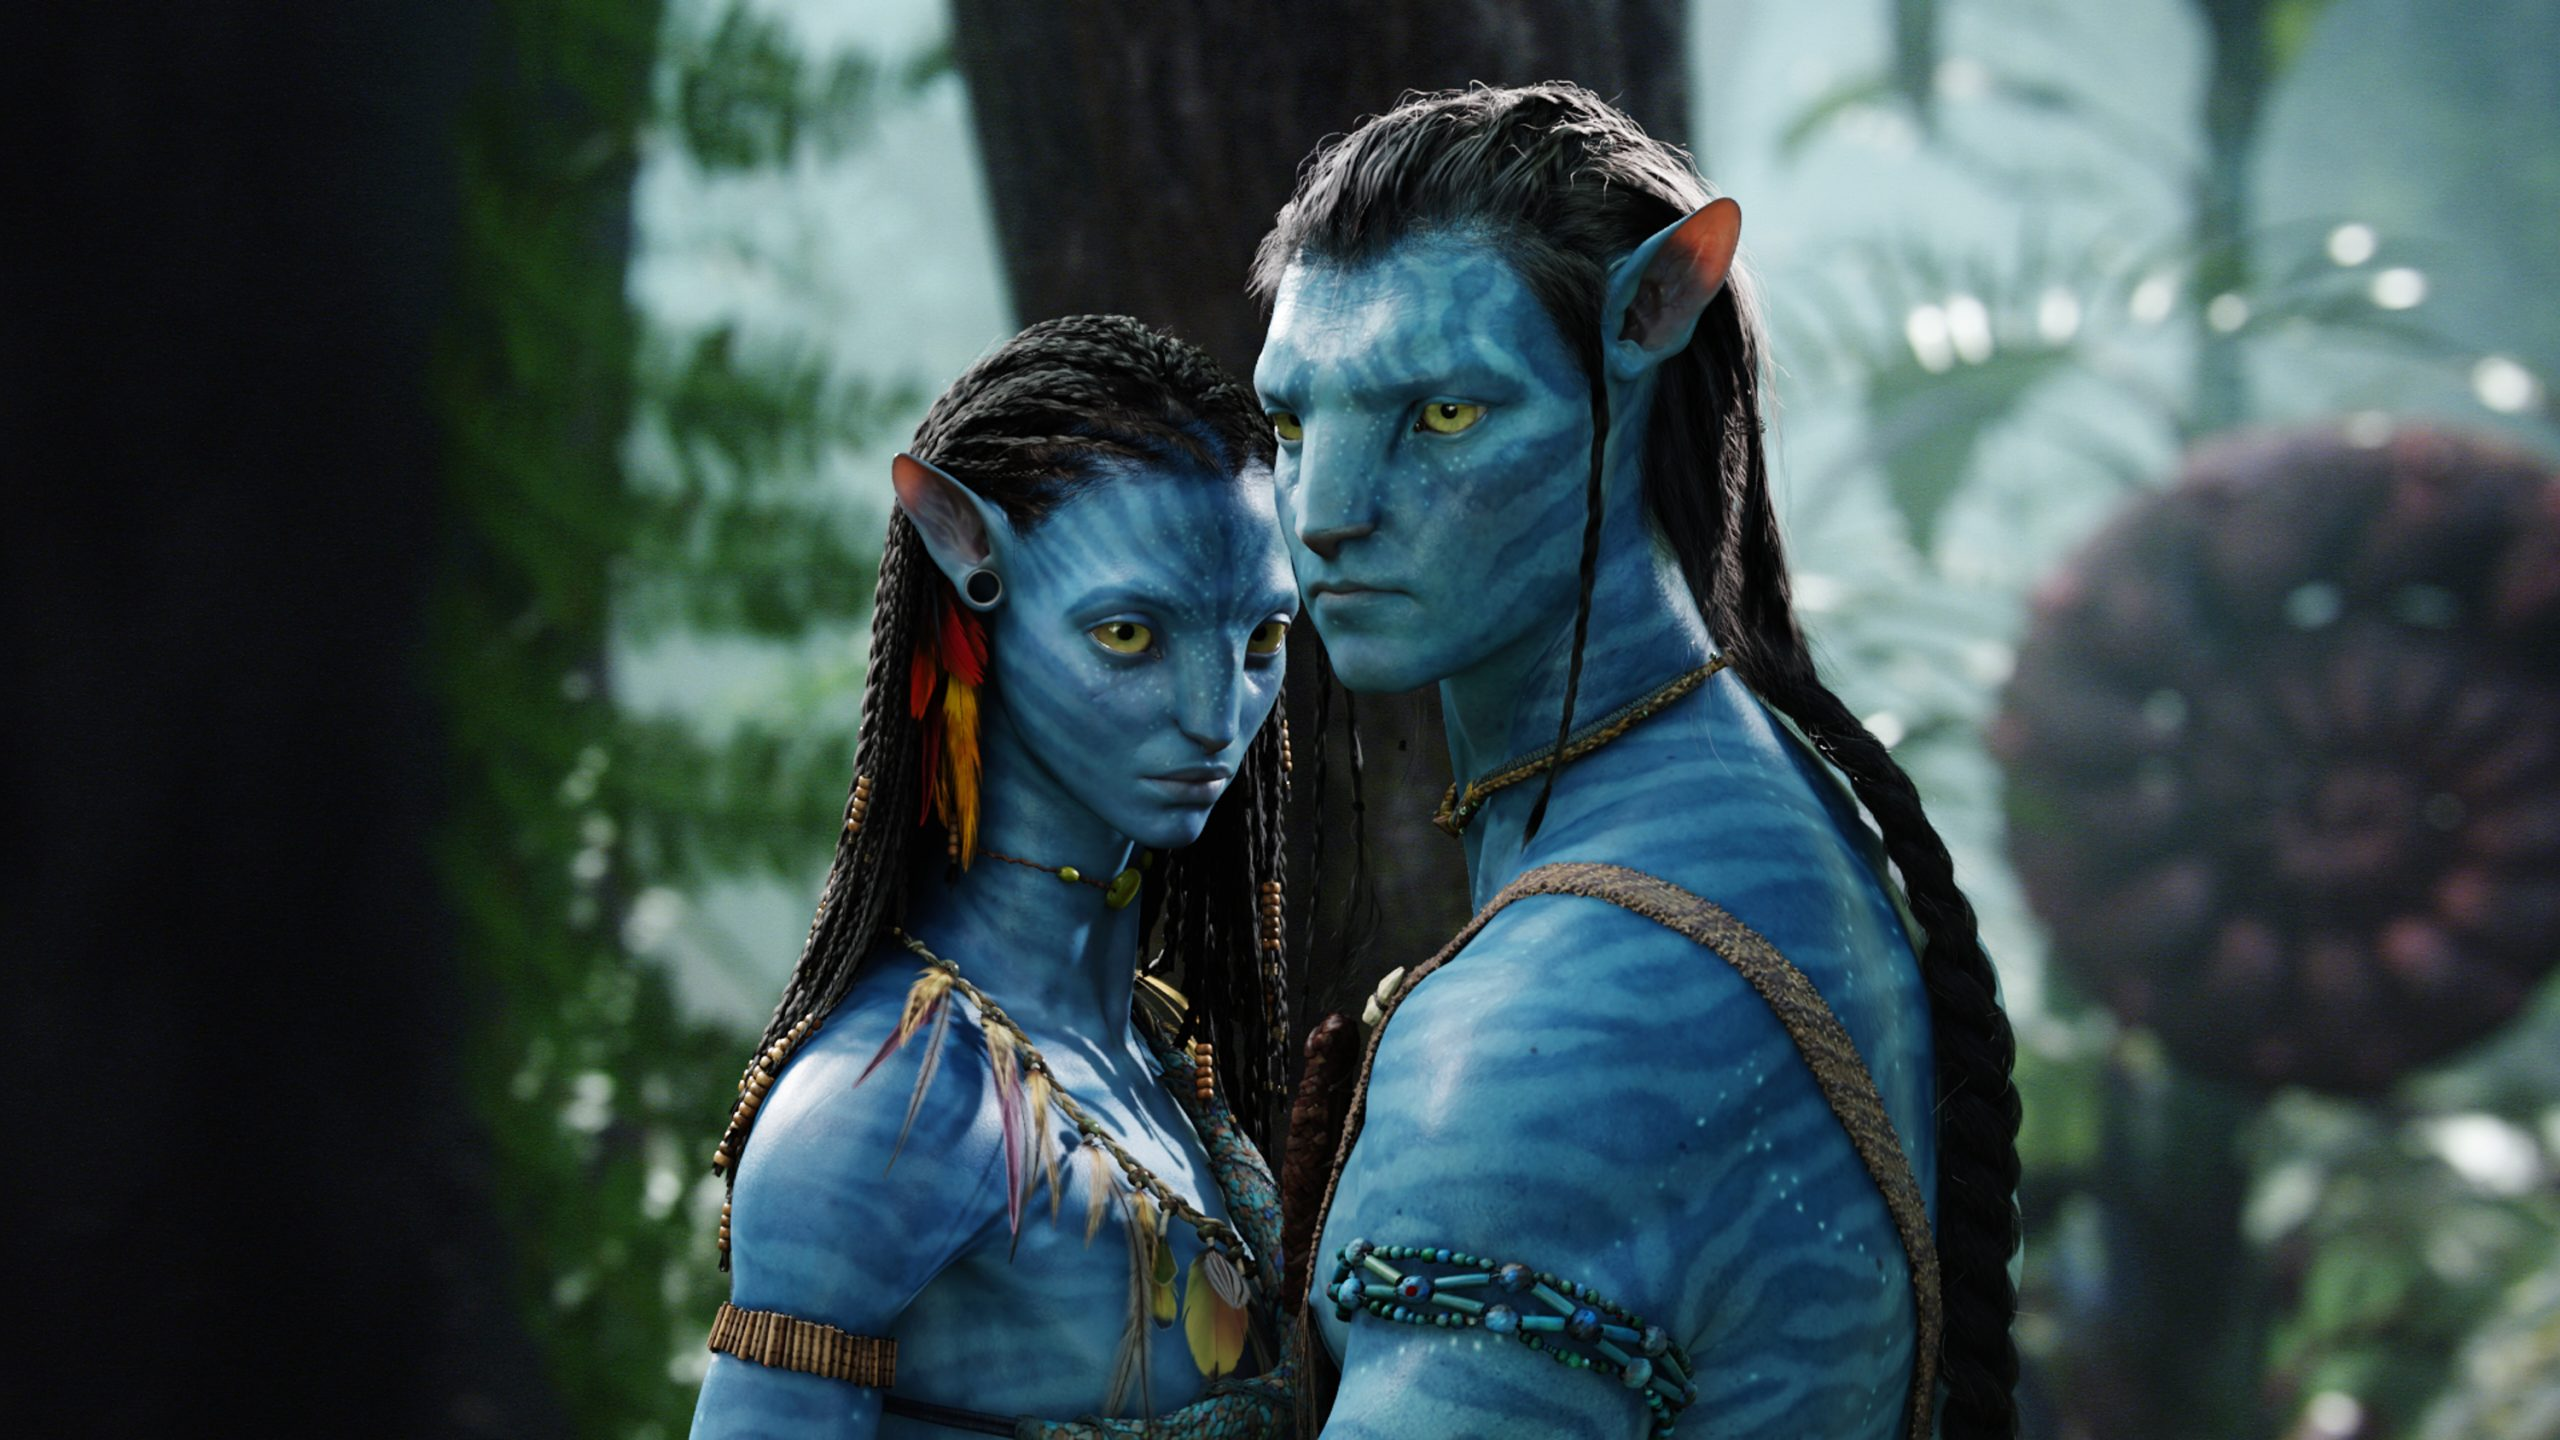 Avatar Unpopular Movie Opinions That Shouldn't Be